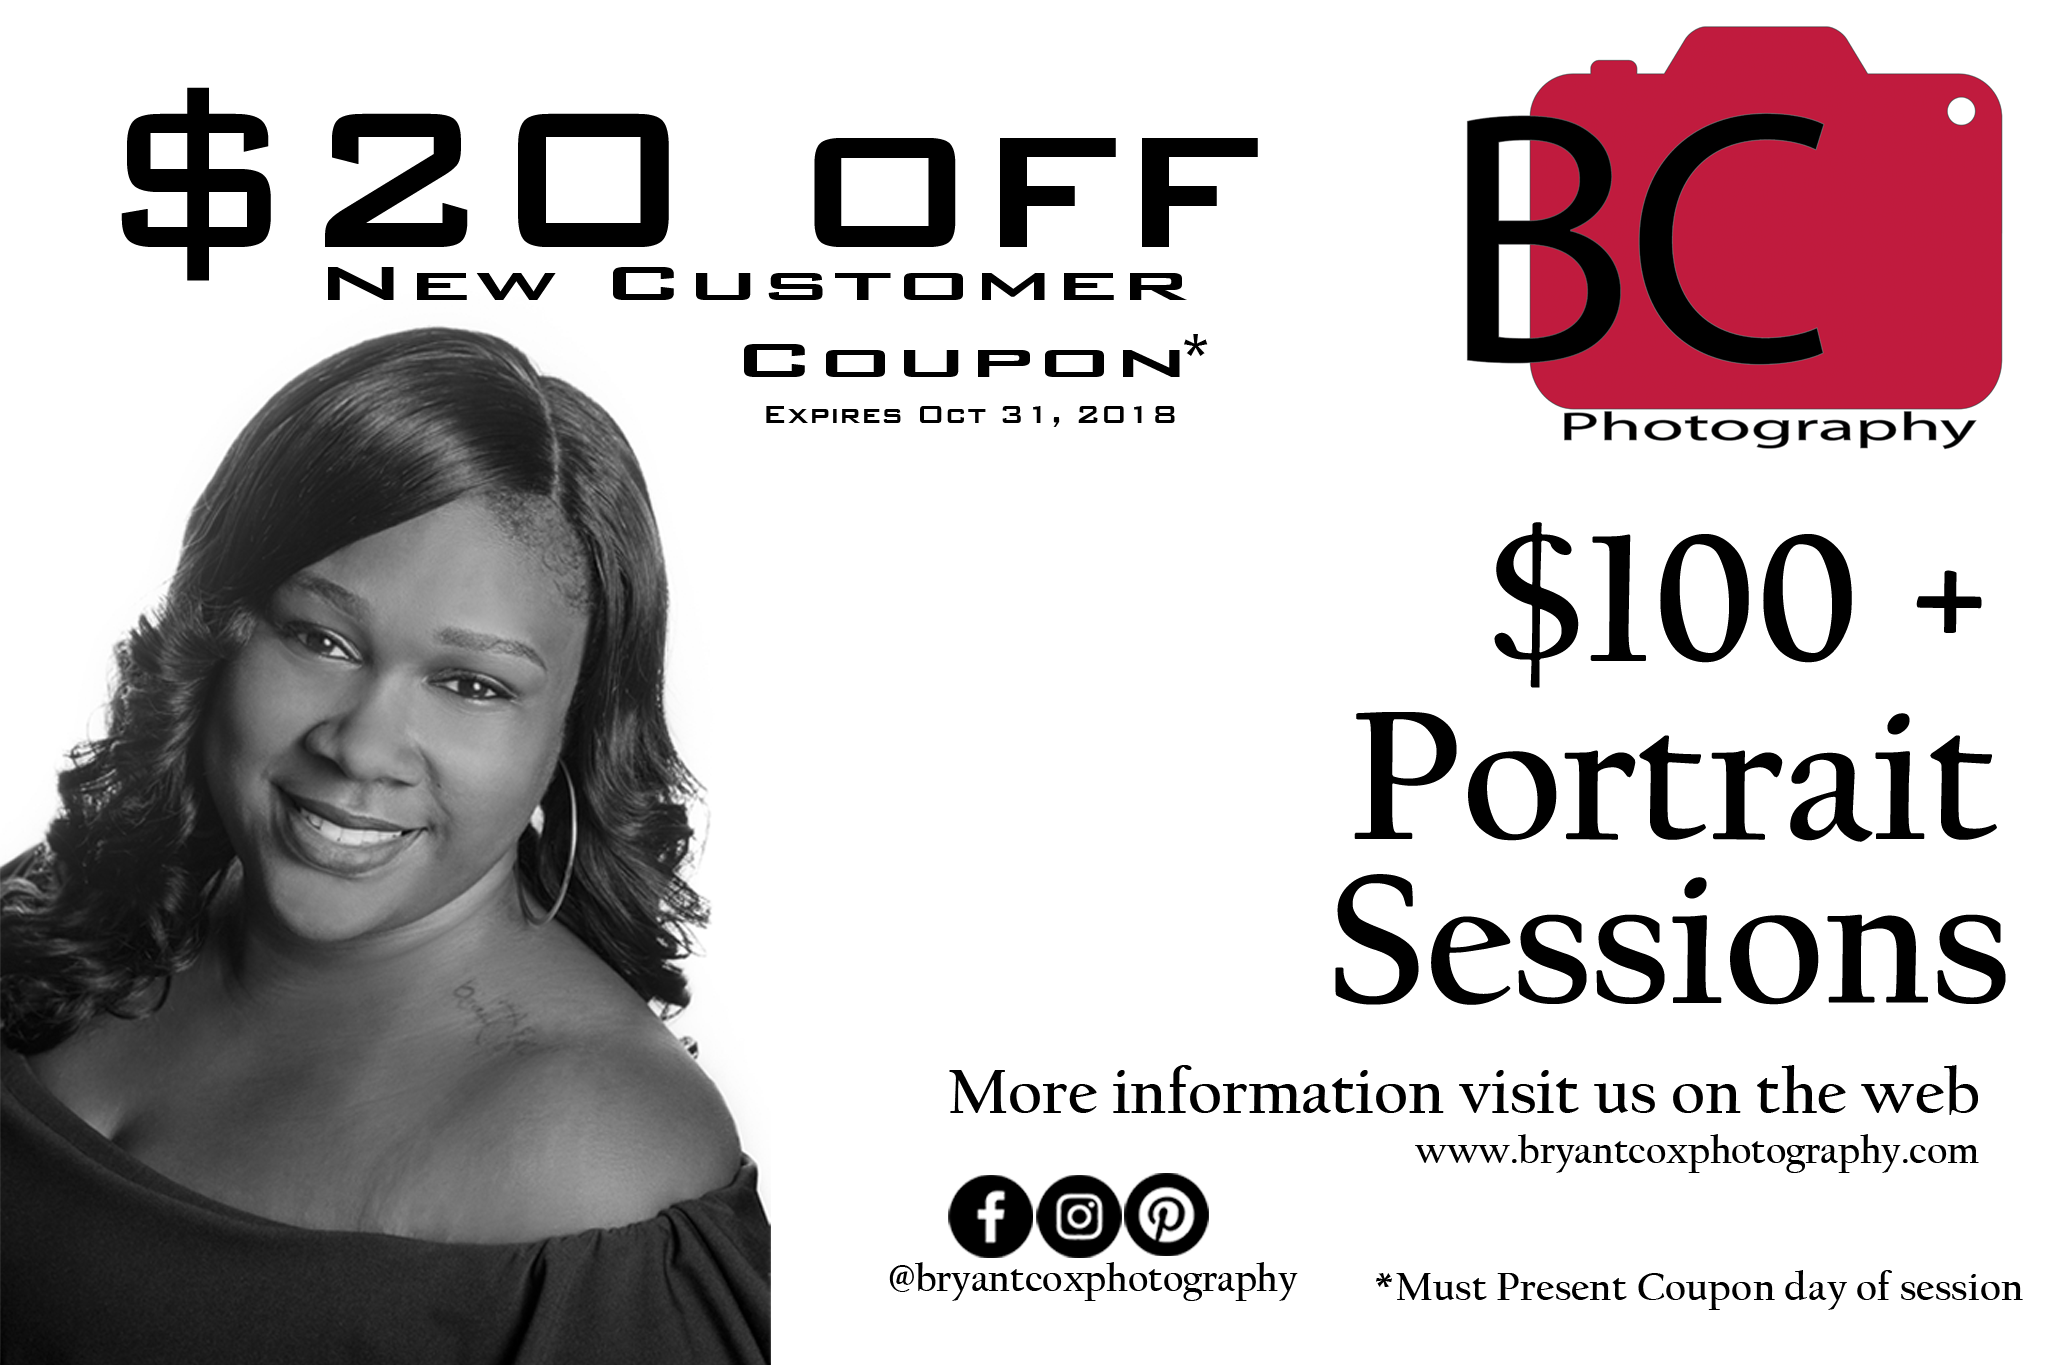 Click and print the above coupon to redeem, bring to your session.